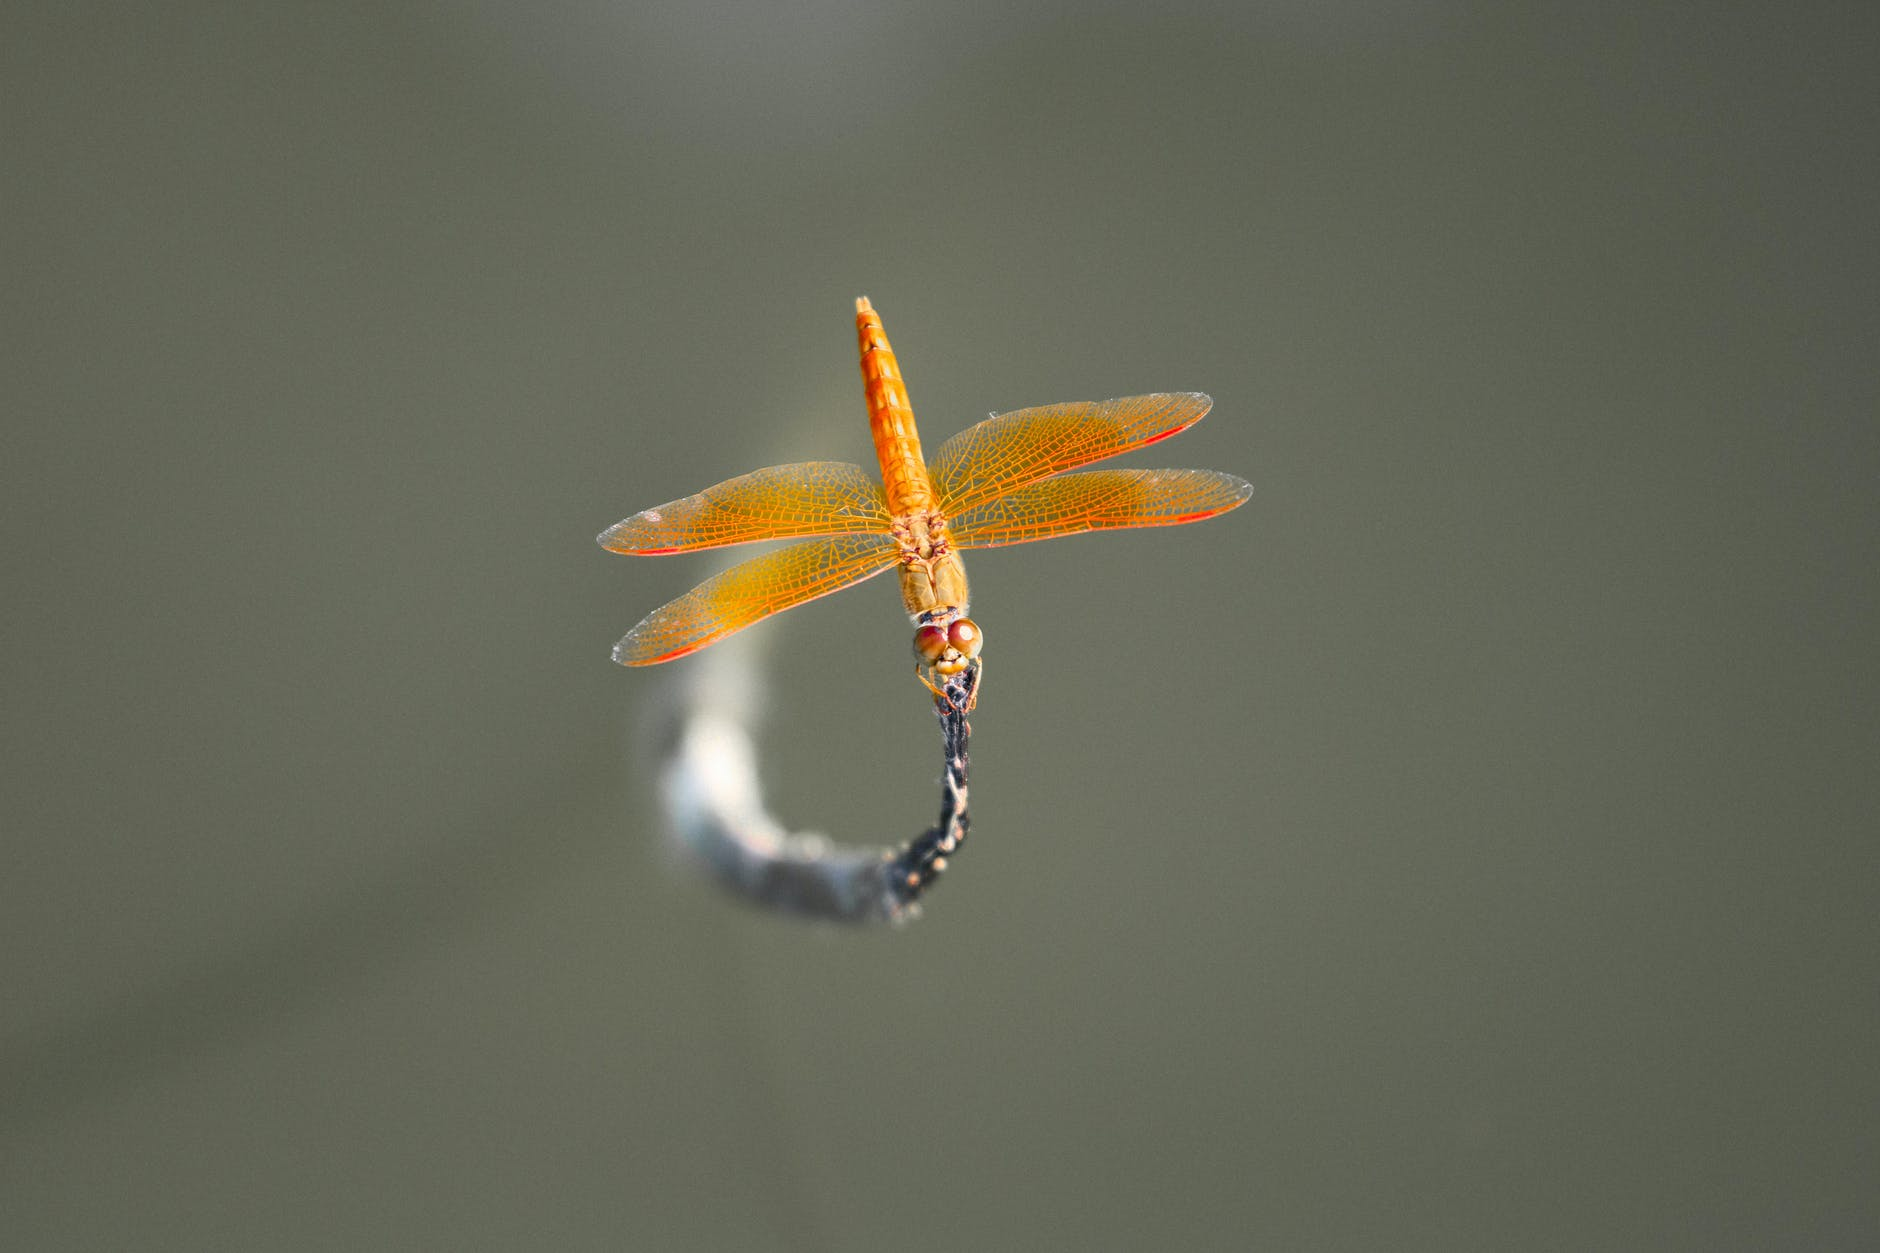 brown skimmer perched on gray leaf